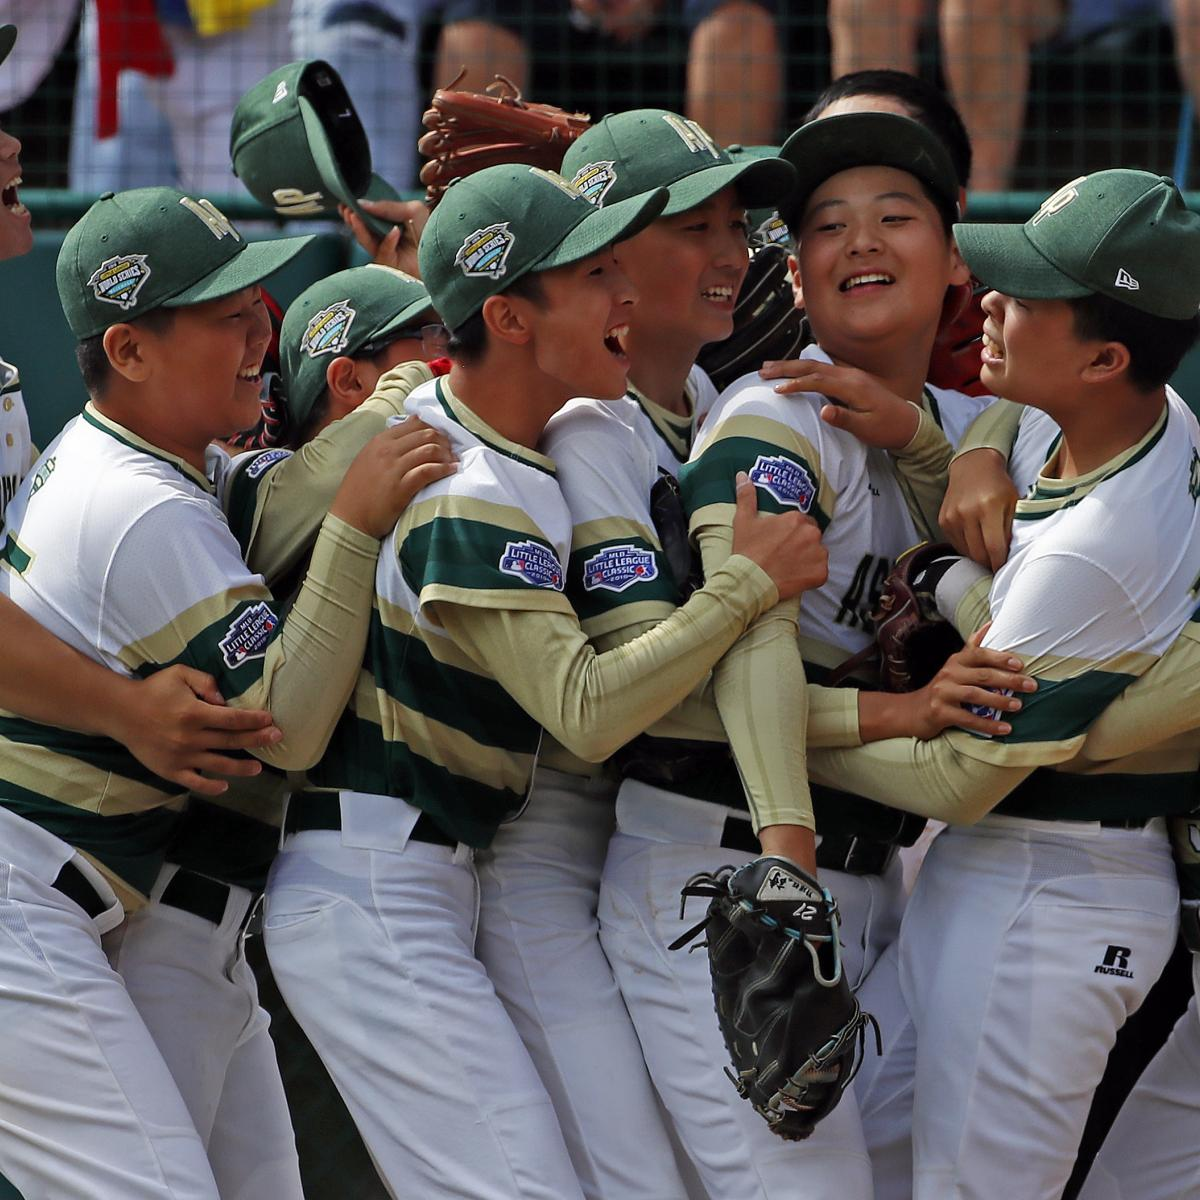 Little League World Series 2018: Championship TV Coverage and Top Players